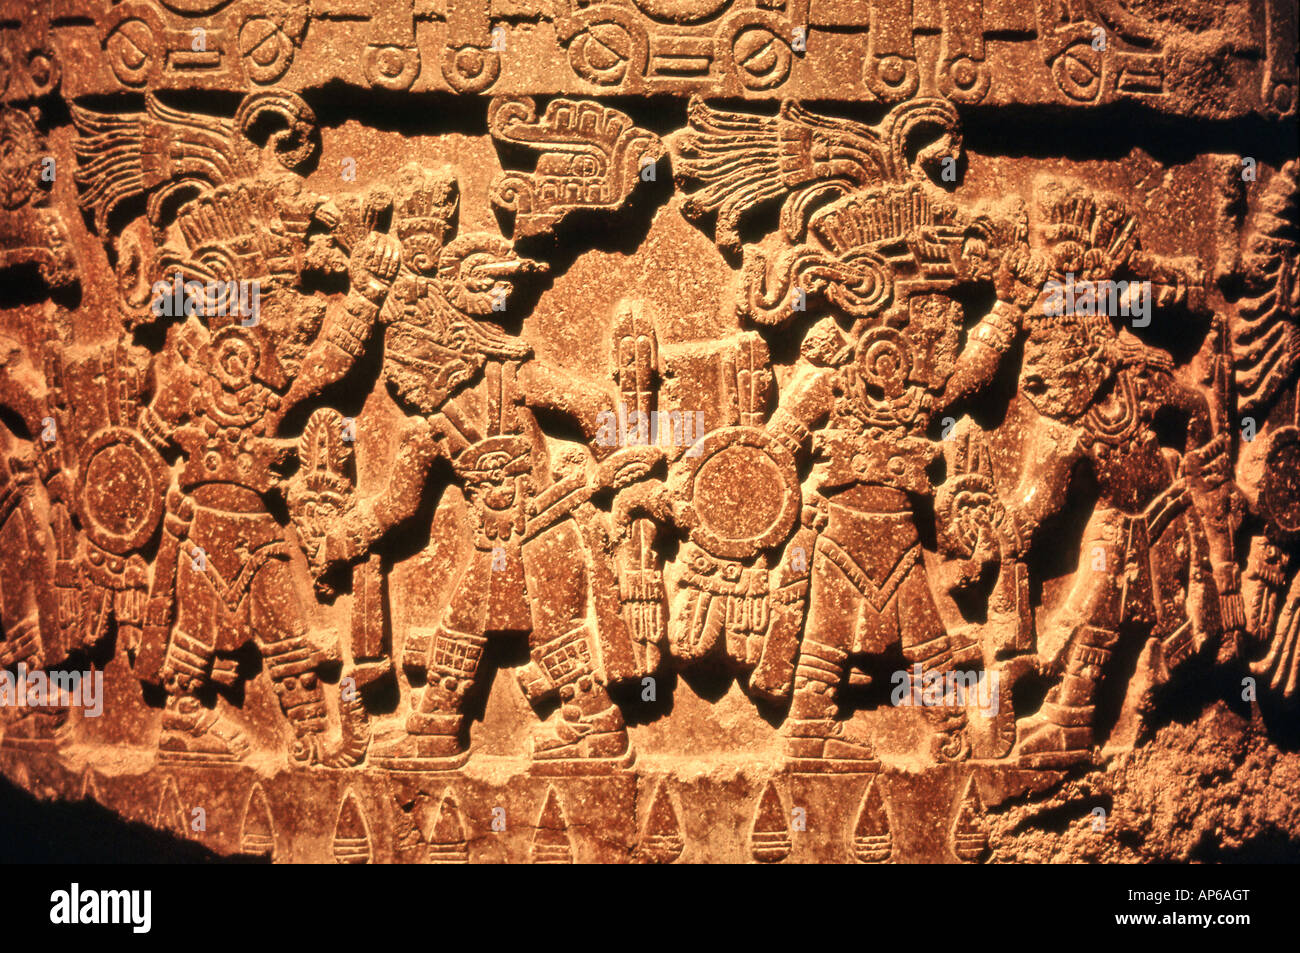 Anthropological Museum Reliefs Mexico City - Stock Image